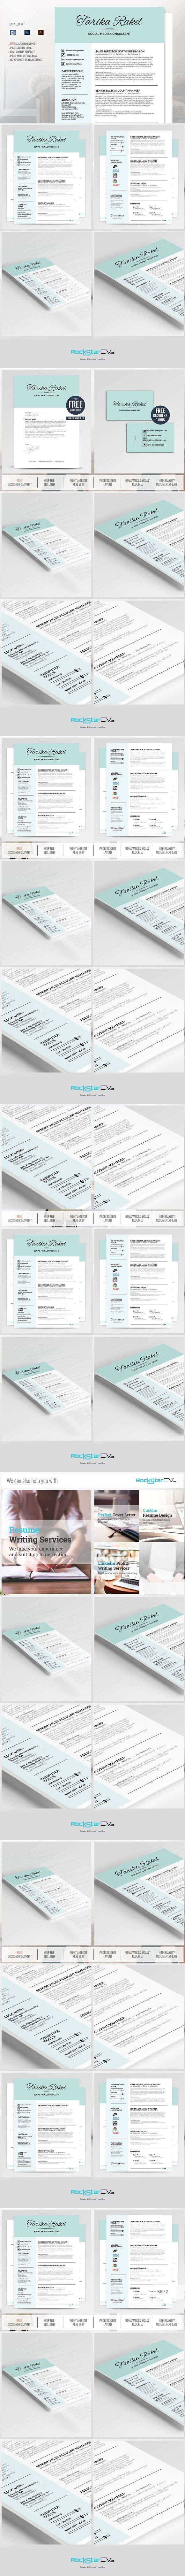 30 best resume templates images on pinterest